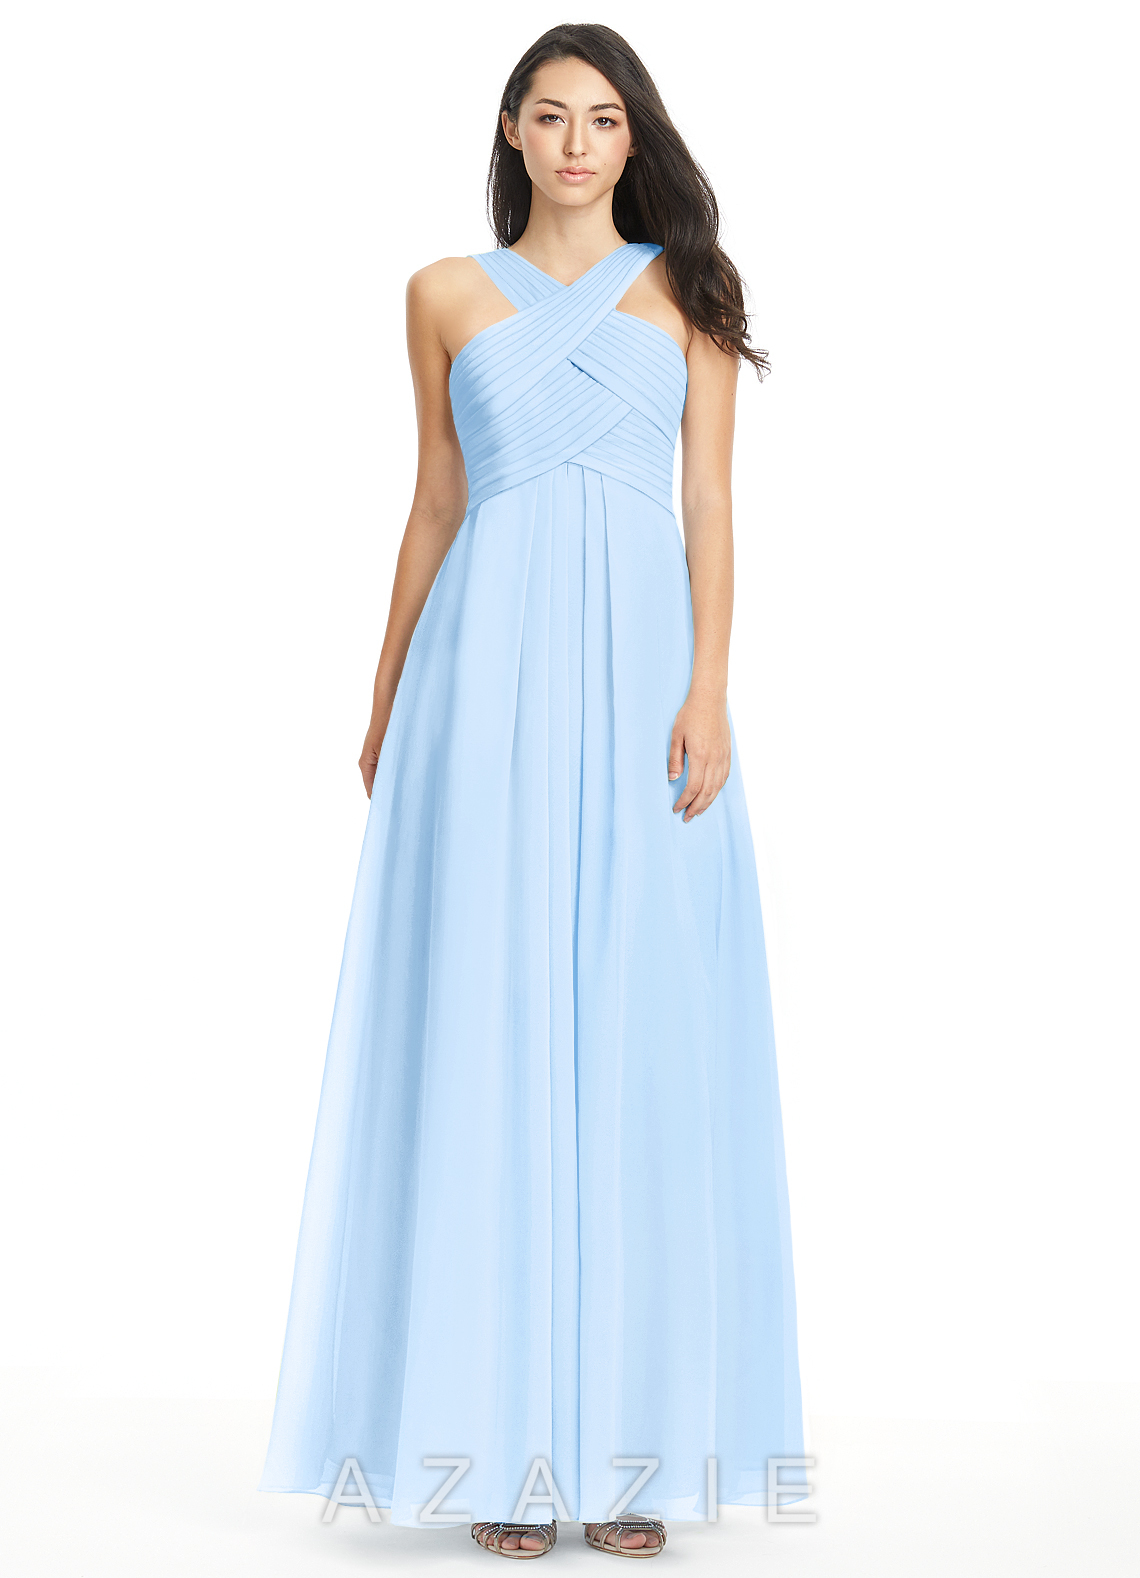 Pale Blue Chiffon Bridesmaid Dresses | www.pixshark.com ...